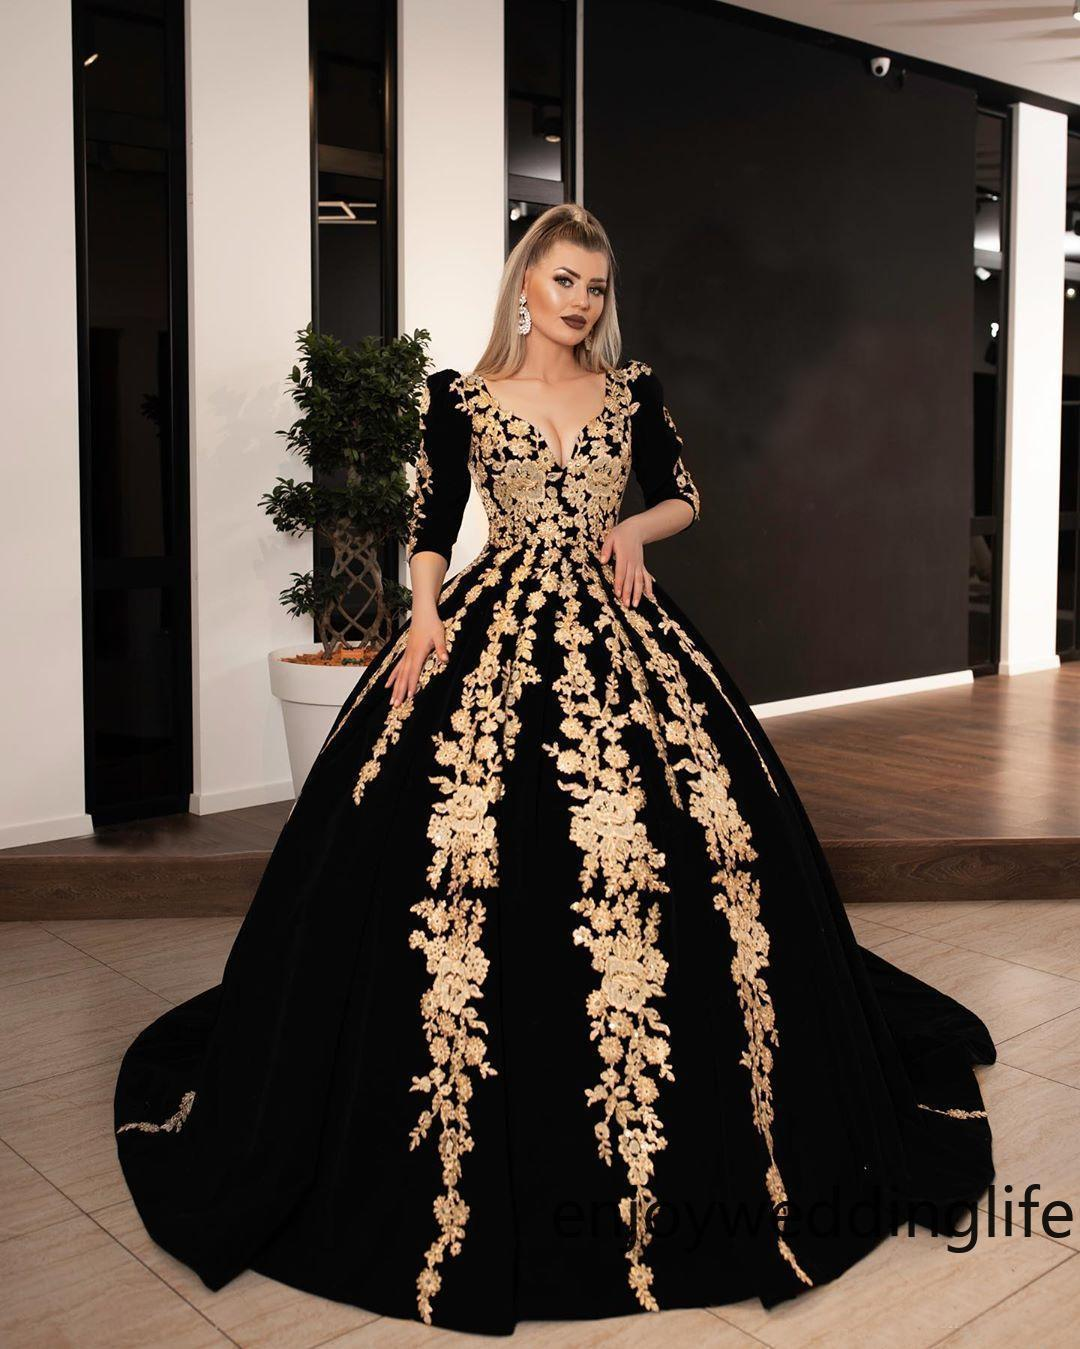 Elegant 2020 Ball Gown Prom Dresses Gold Lace Appliqued Dubai Arabic Celebrity V Neck Half Sleeves Evening Gowns Formal Quinceanera Dress